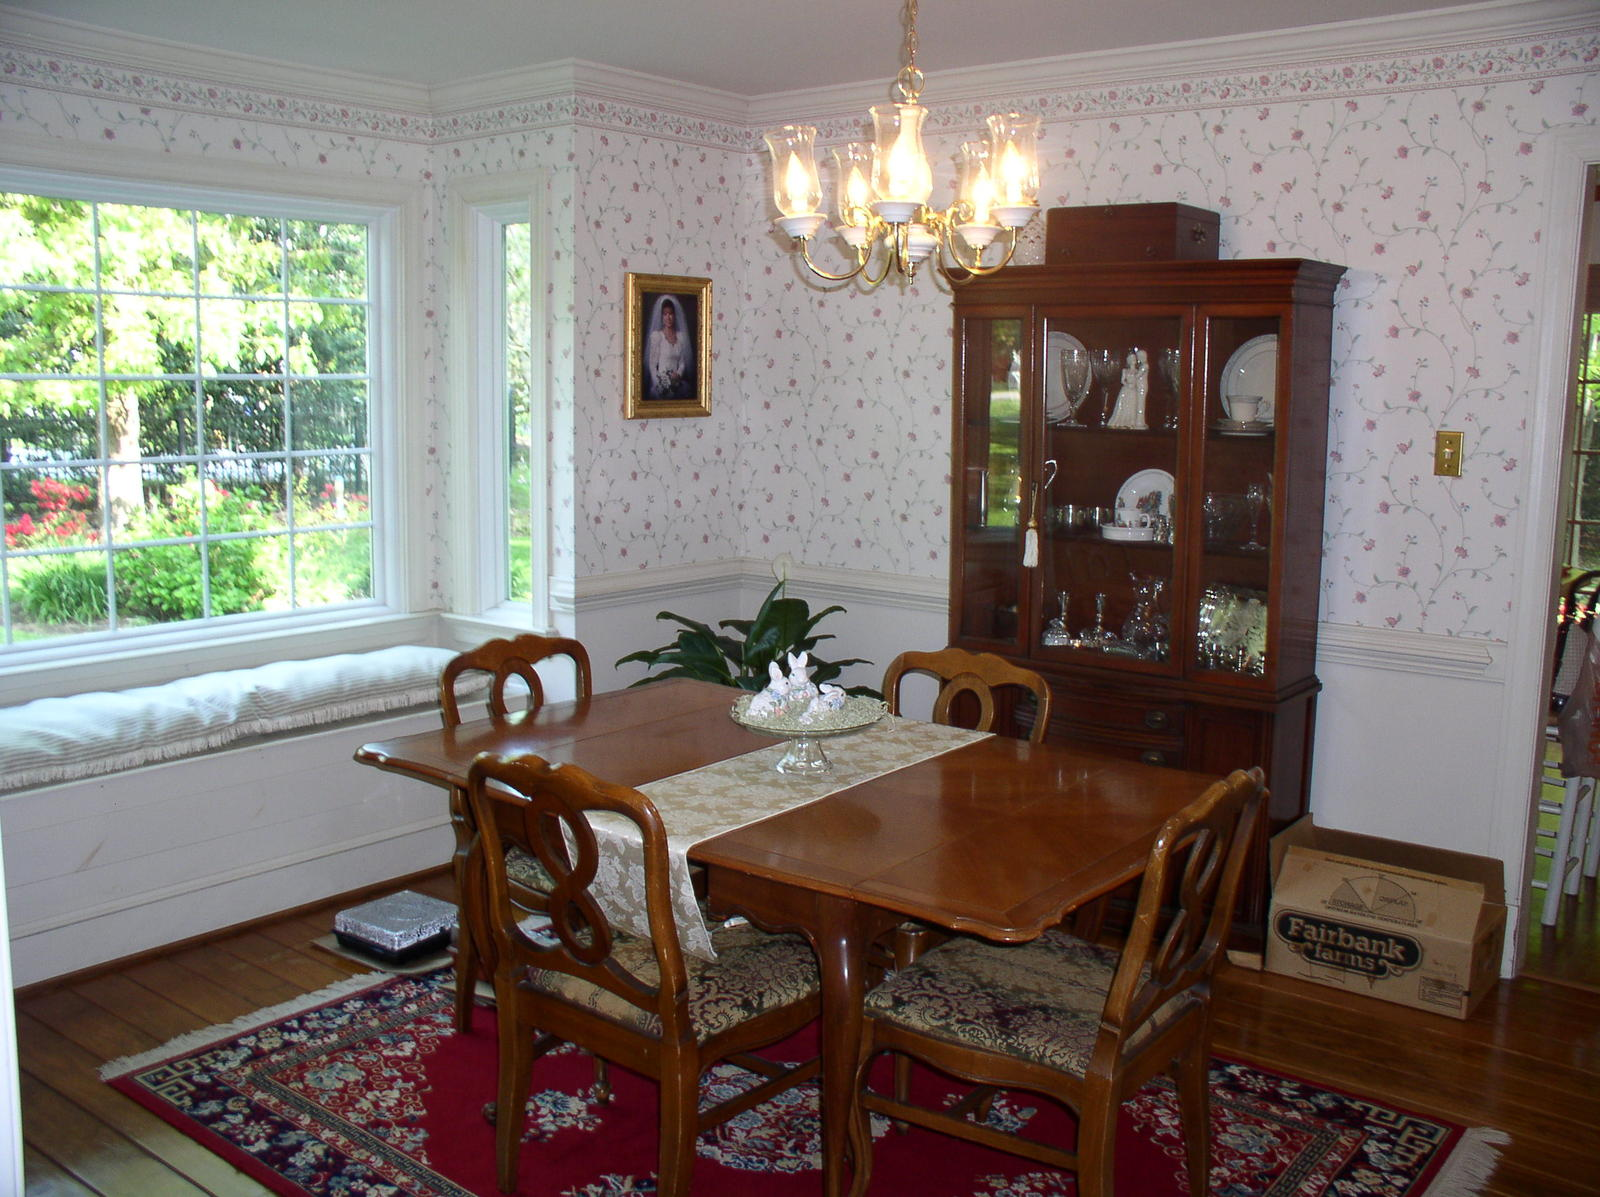 Dining Room Window Treatments Of With Window Treatments For Bay Box Window With Seat Dining